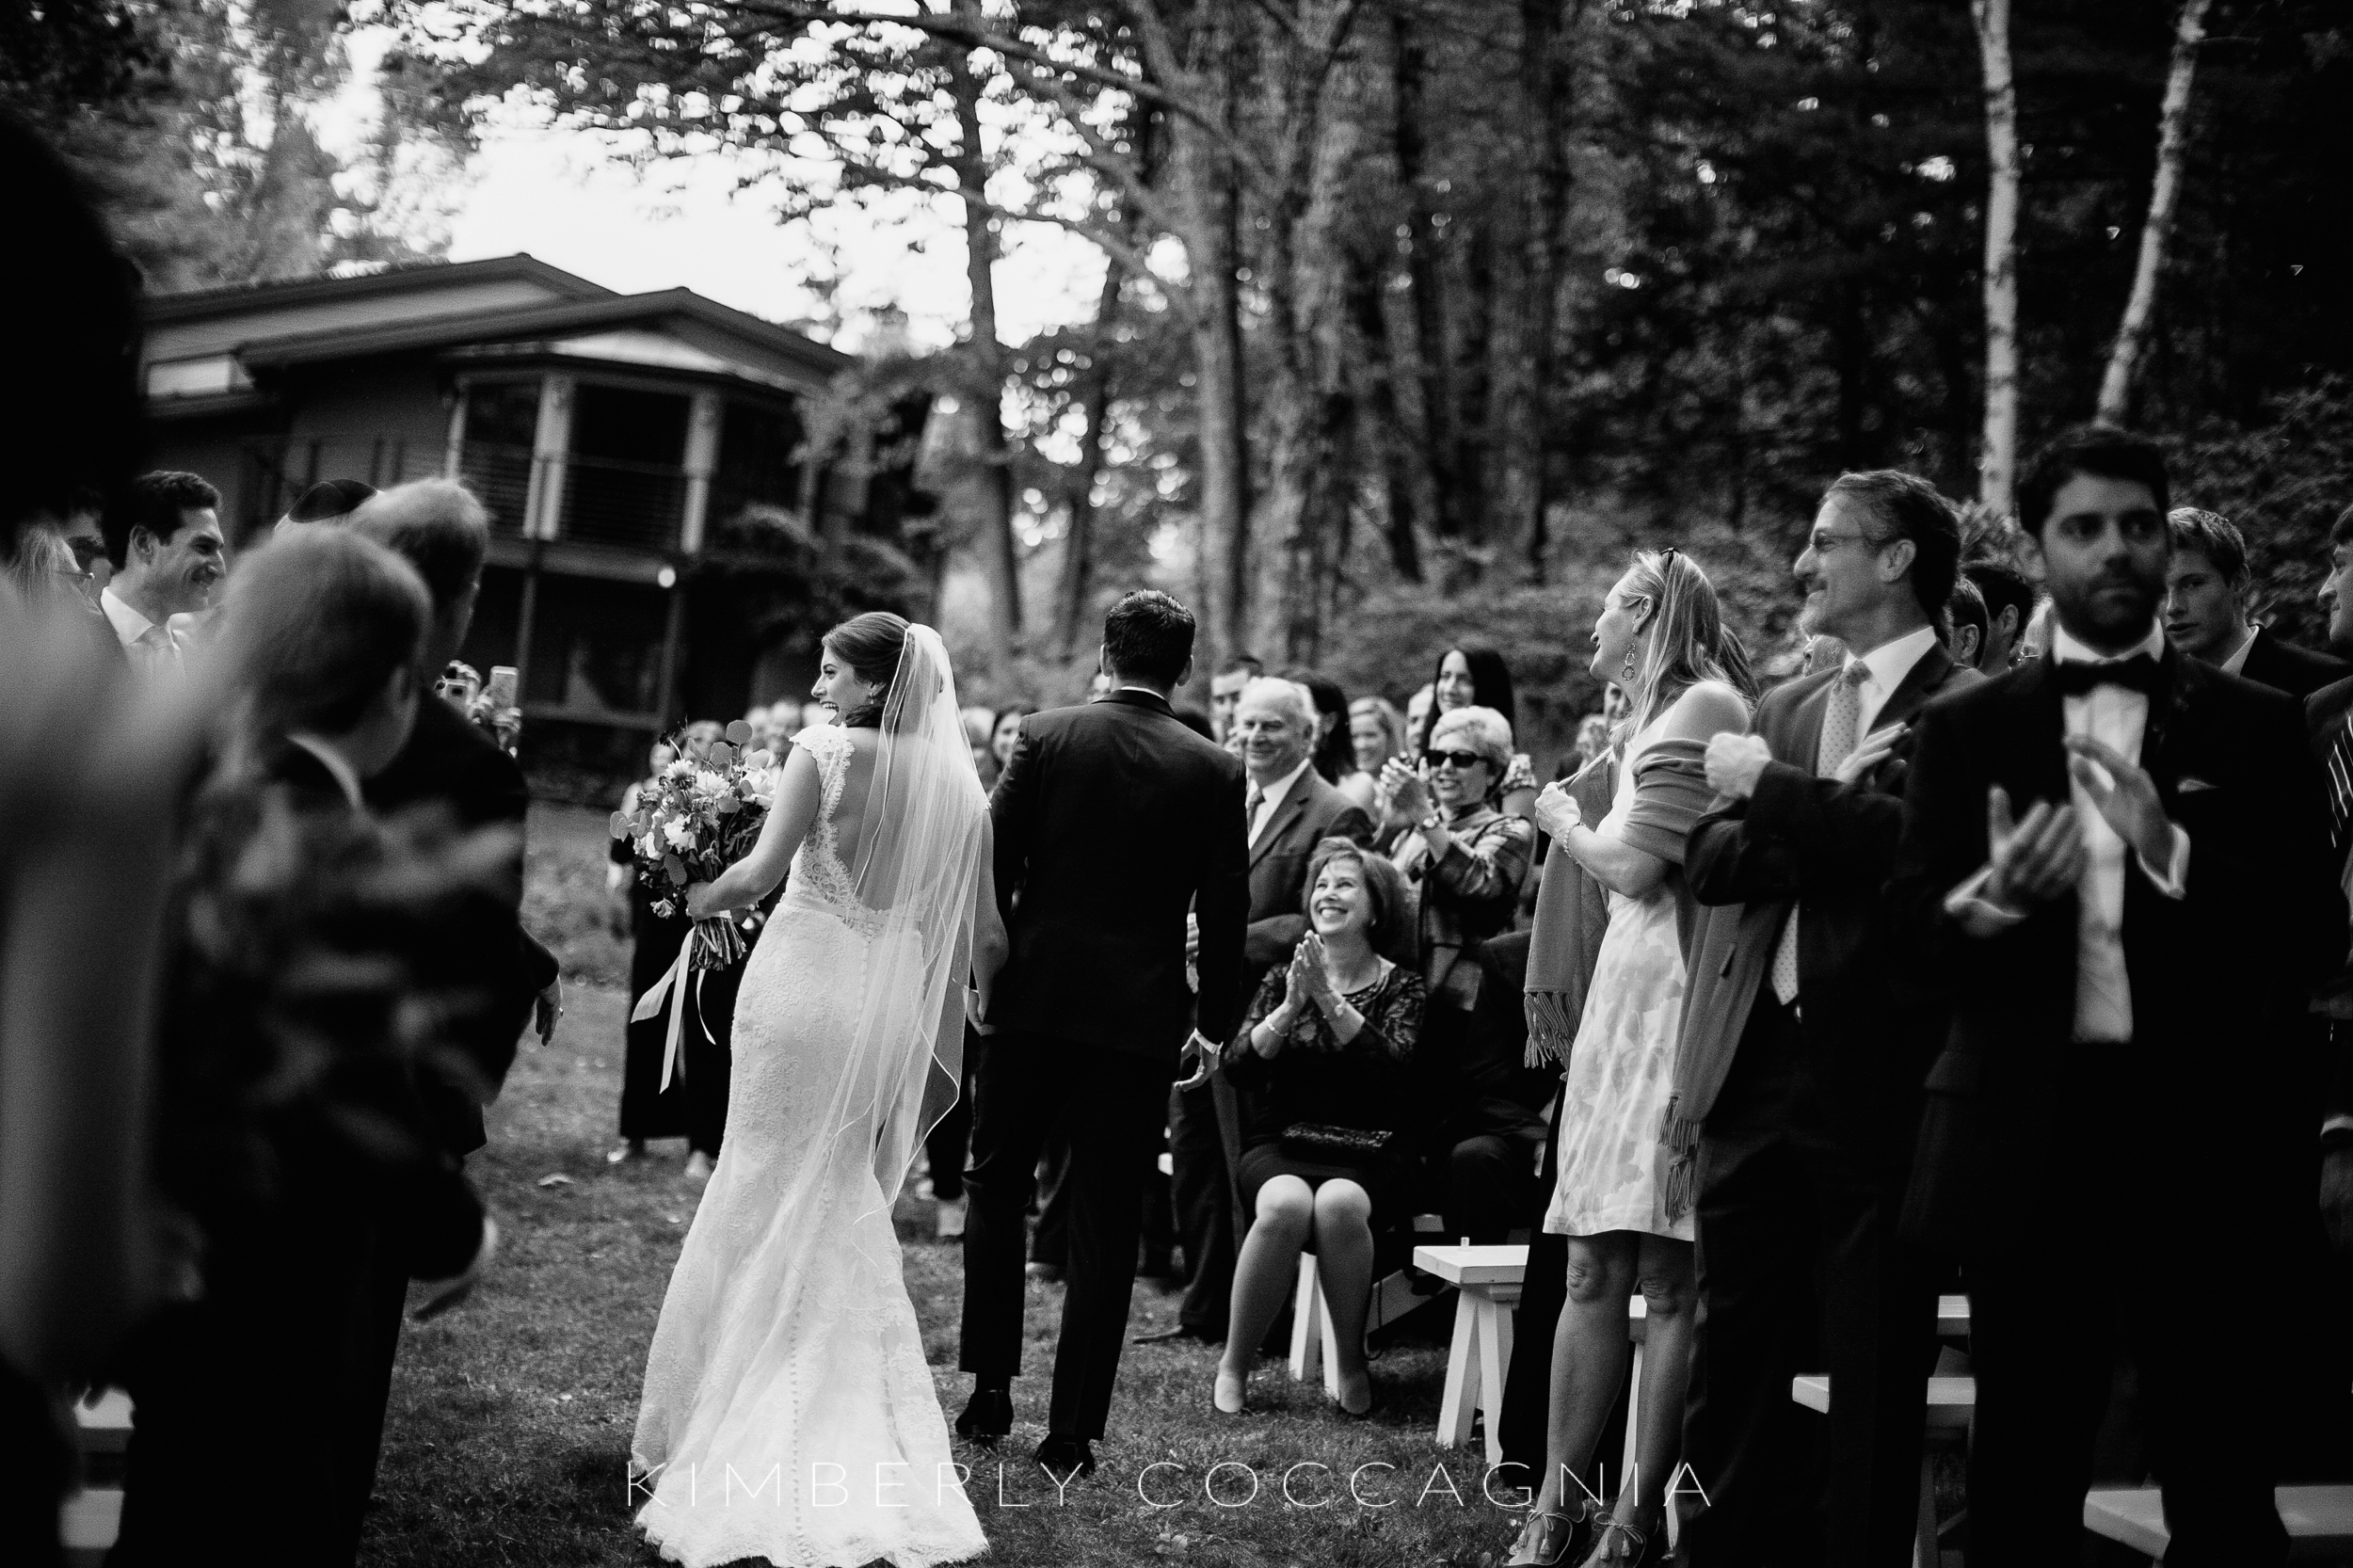 Kimberly+Coccagnia+Hudson+Valley+Wedding+Photographer-85.JPG